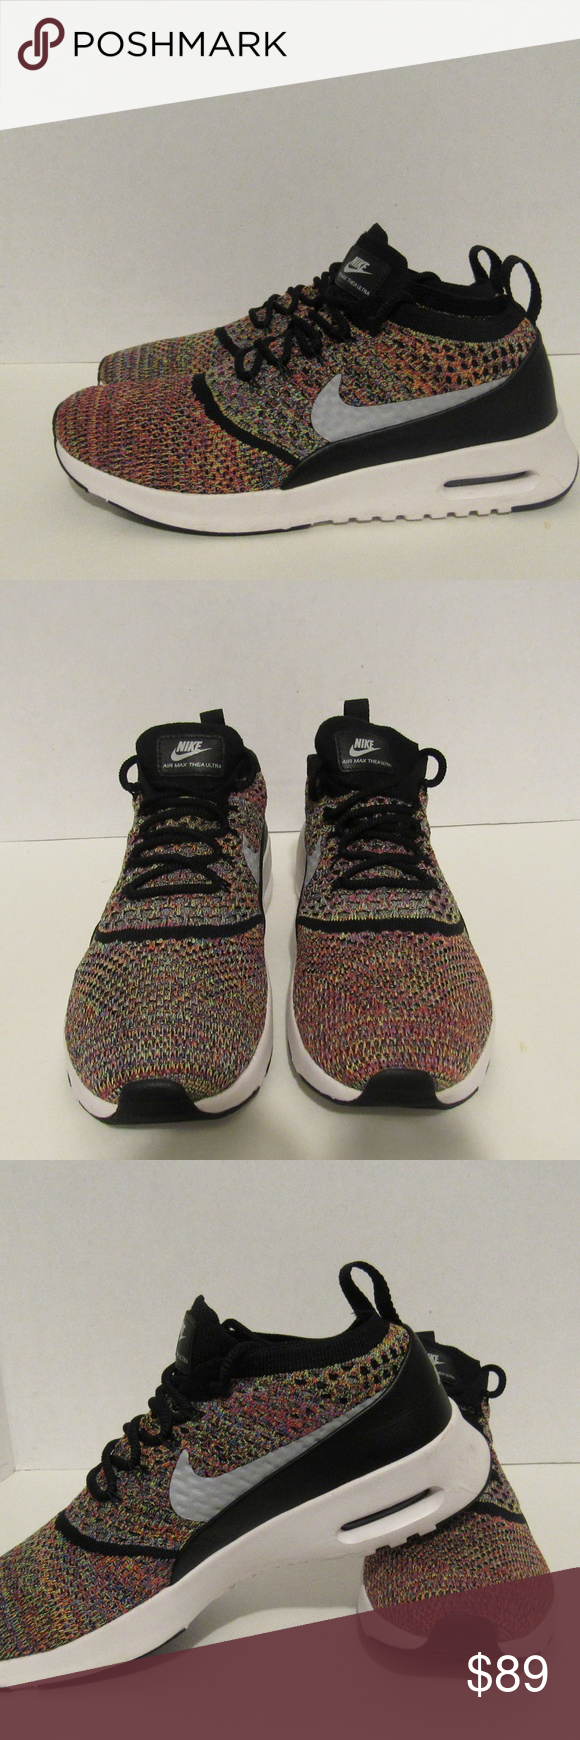 77cfe5851e7 Nike Air Max Thea Ultra Flyknit Rainbow shoe Nike Air Max Thea Ultra Flyknit  Rainbow Running